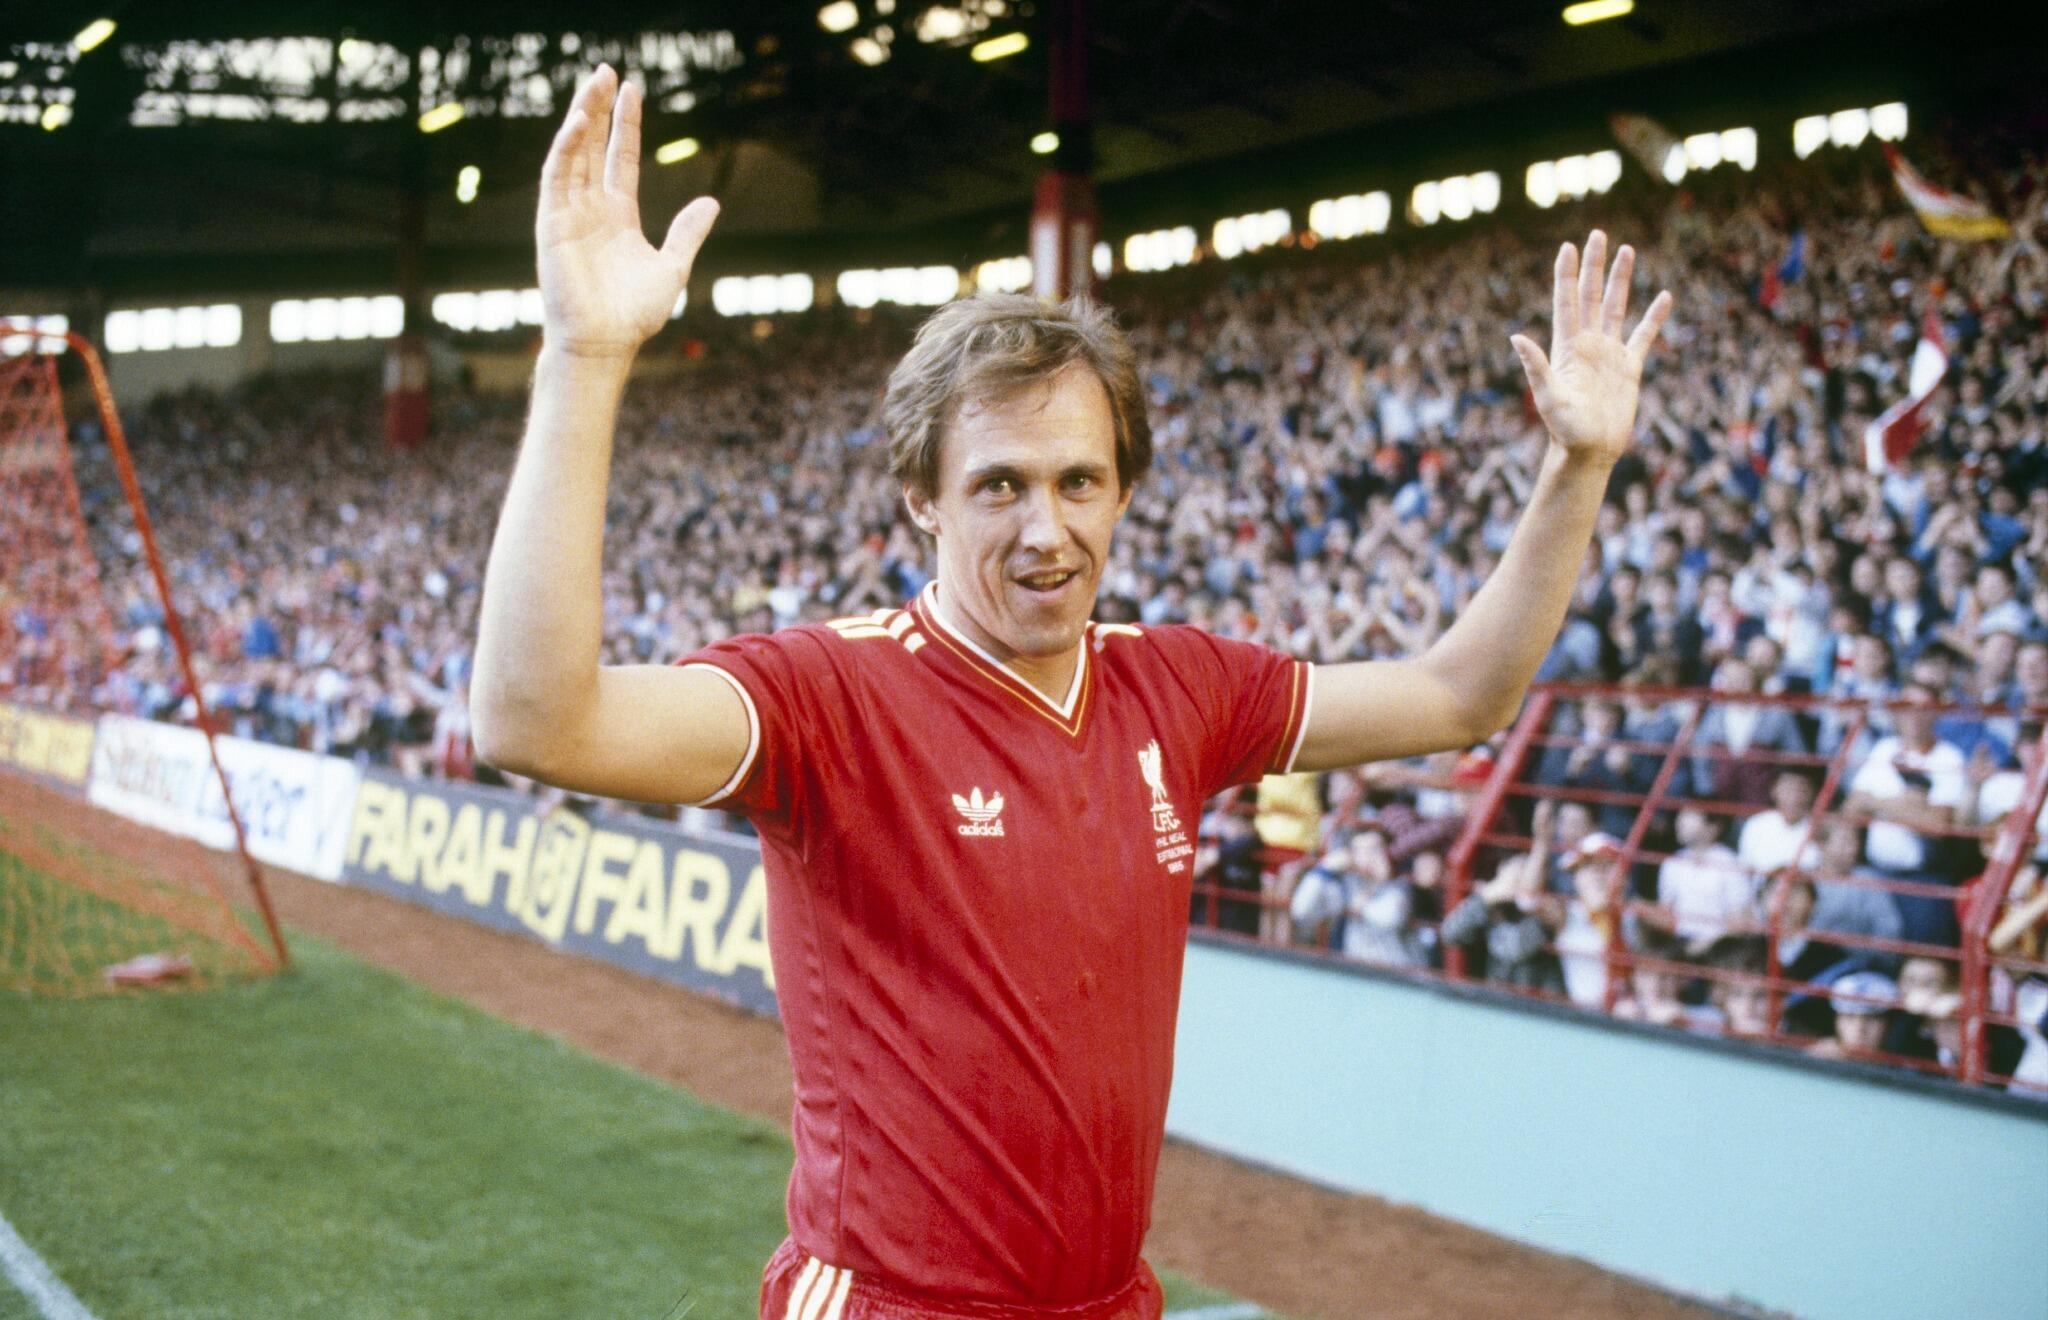 """@LFC: On this day 39 years ago...this man made the first of 650 appearances for #LFC http://t.co/twRLc4stzb"" As did Terry Mac 0-0at Bitters"